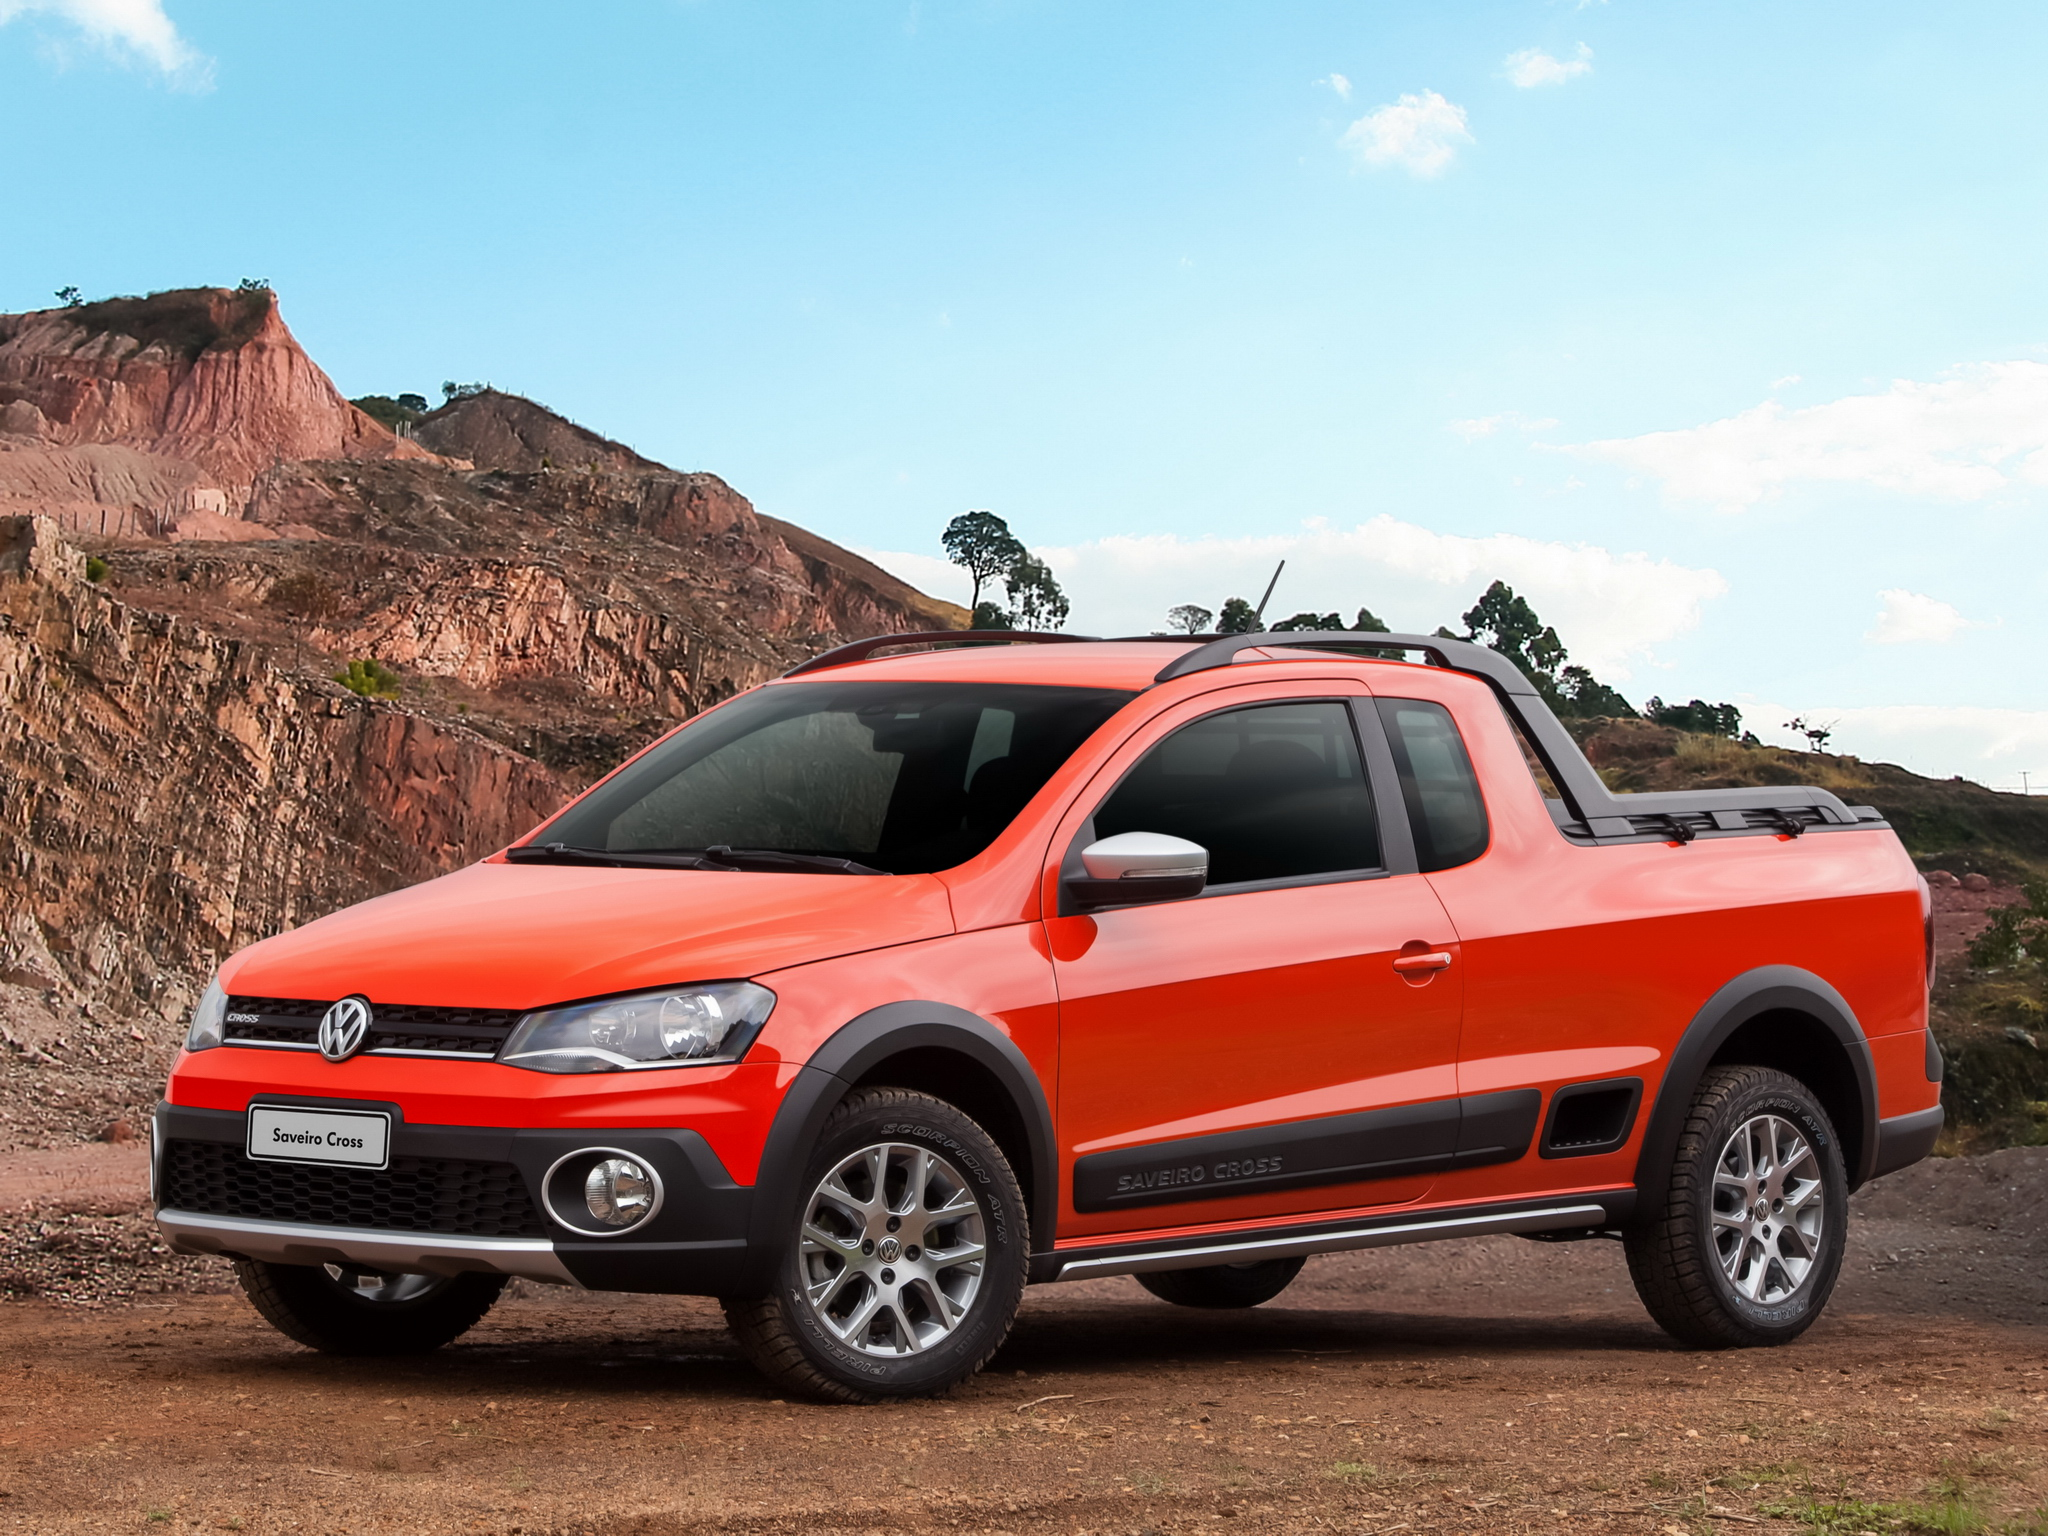 2014 Volkswagen Saveiro Cross Is a Funky Brazilian Pickup [Video 2048x1536